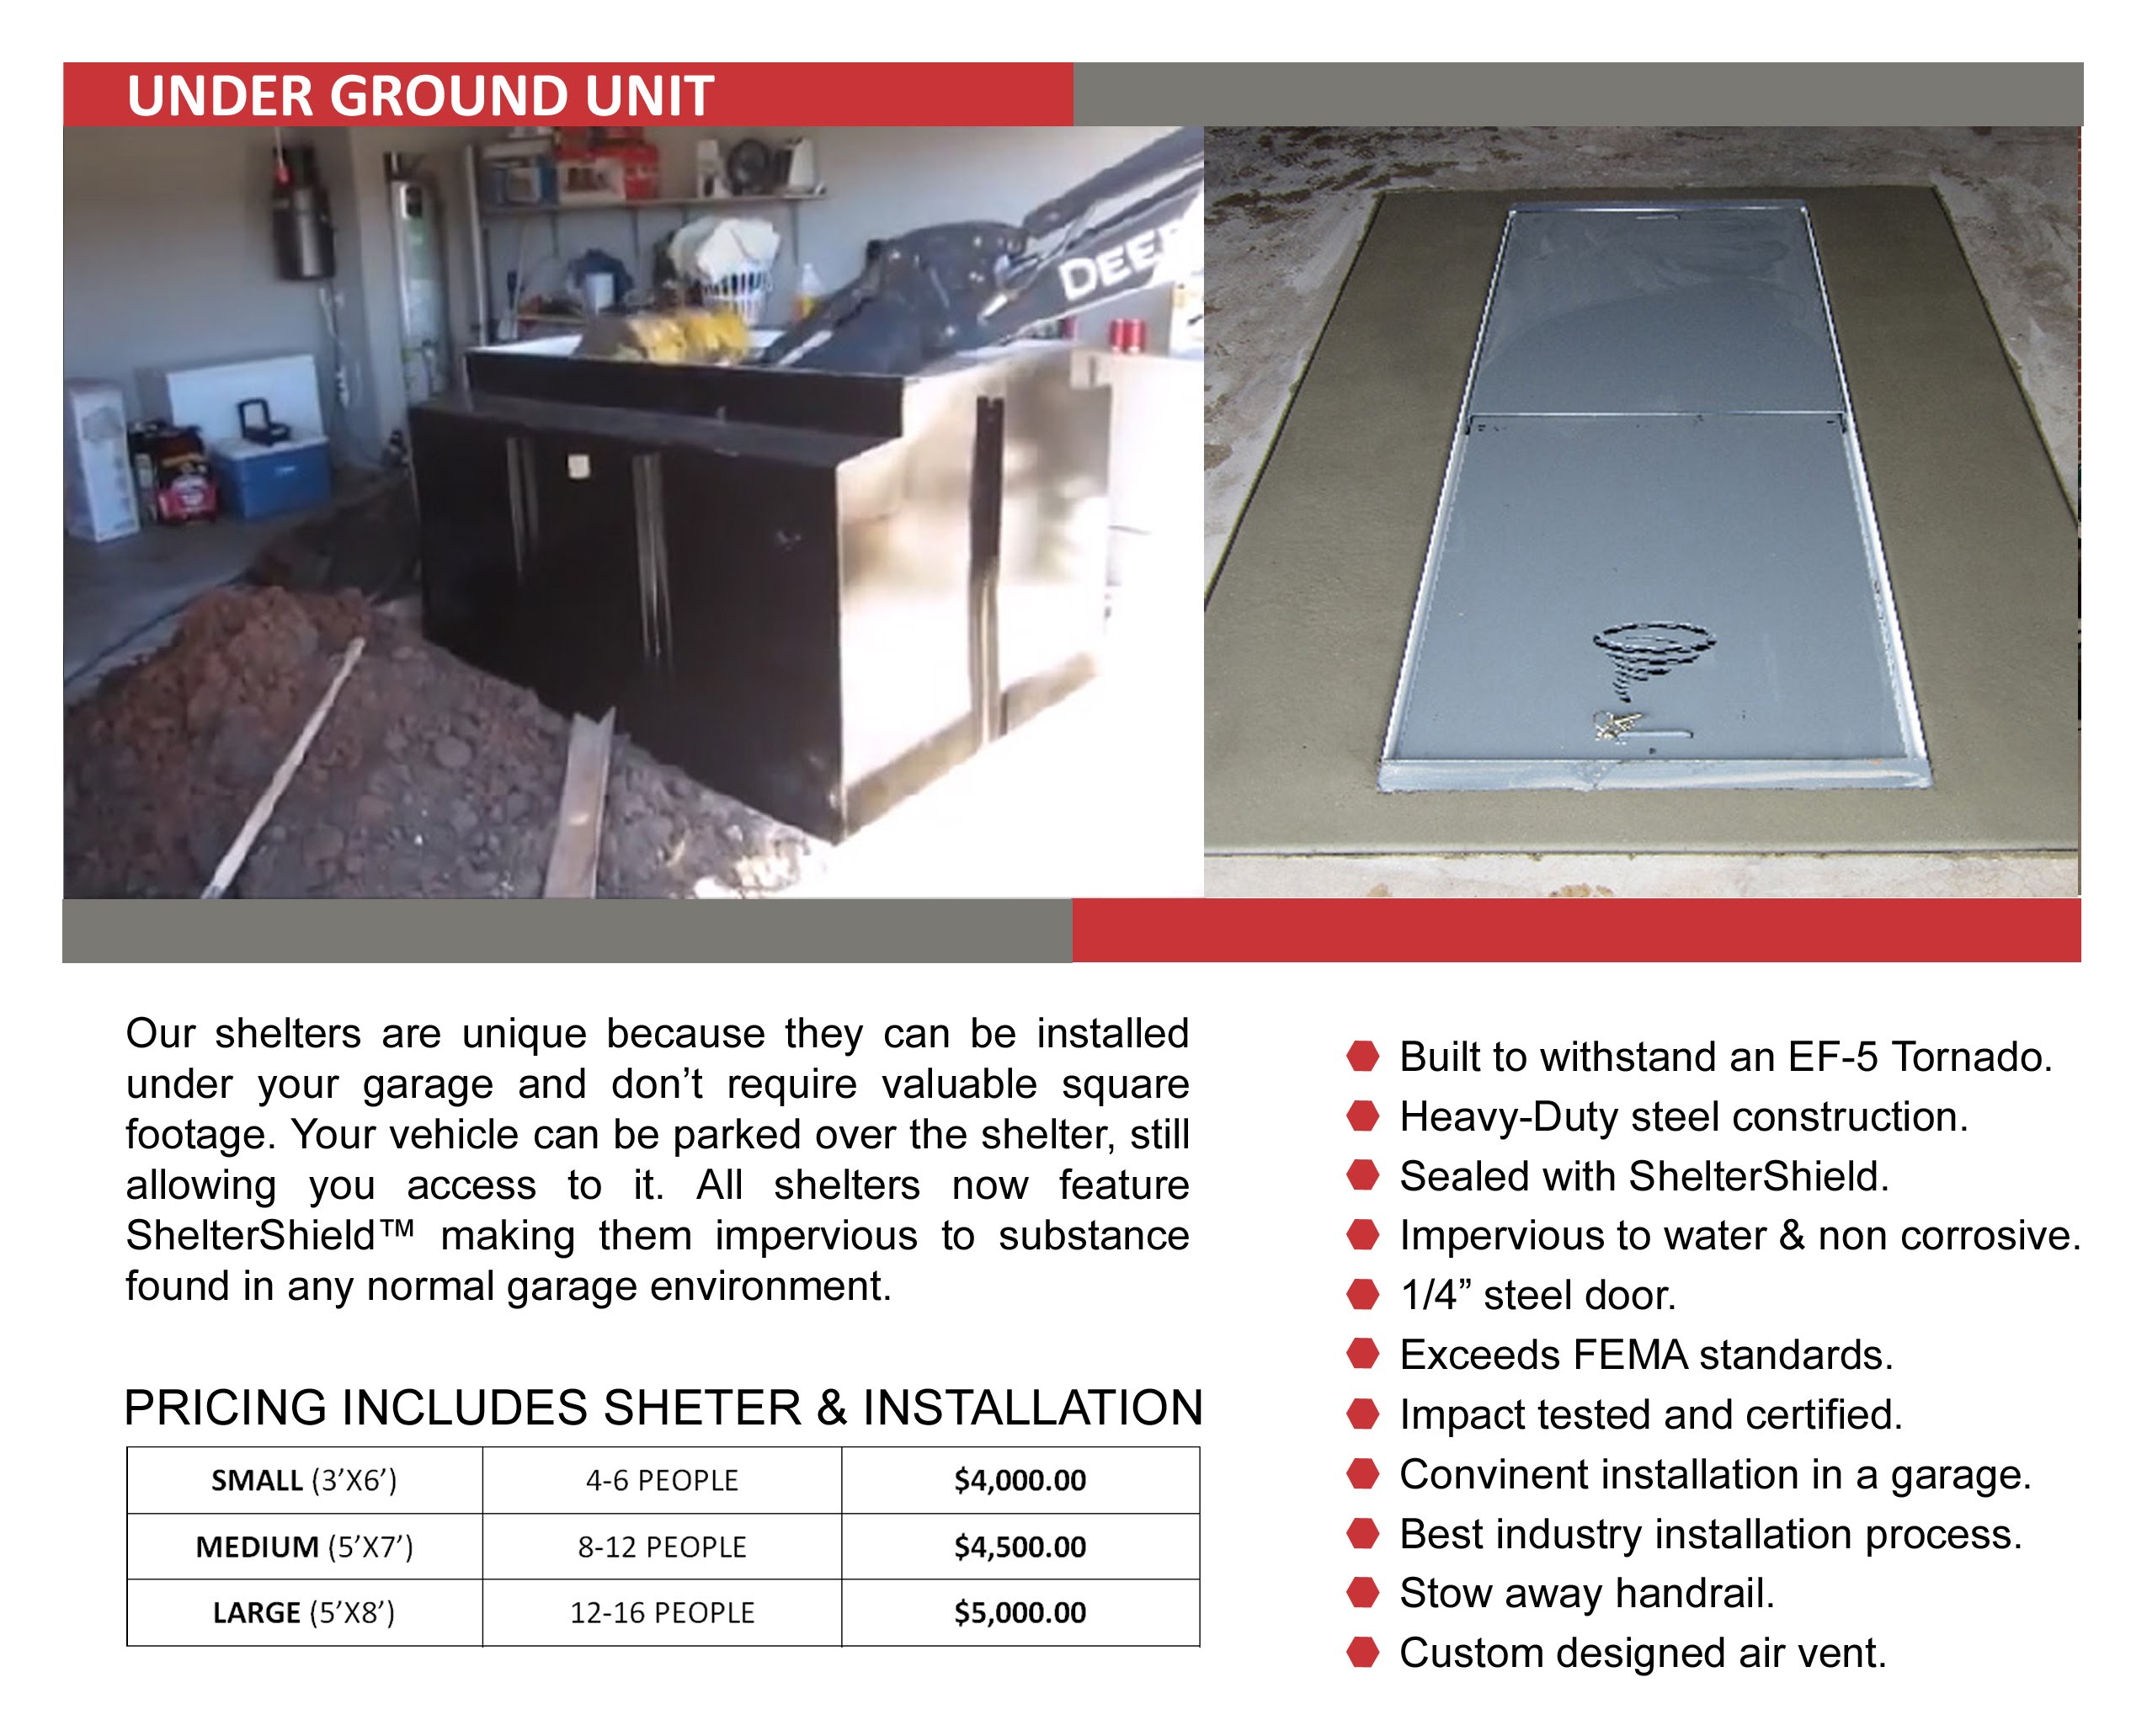 Tornado shelters mmpmr center and passed certification to withstand impacts associated with the 250 mph winds of an ef 5 tornado our shelters meet or exceed fema guidelines xflitez Gallery